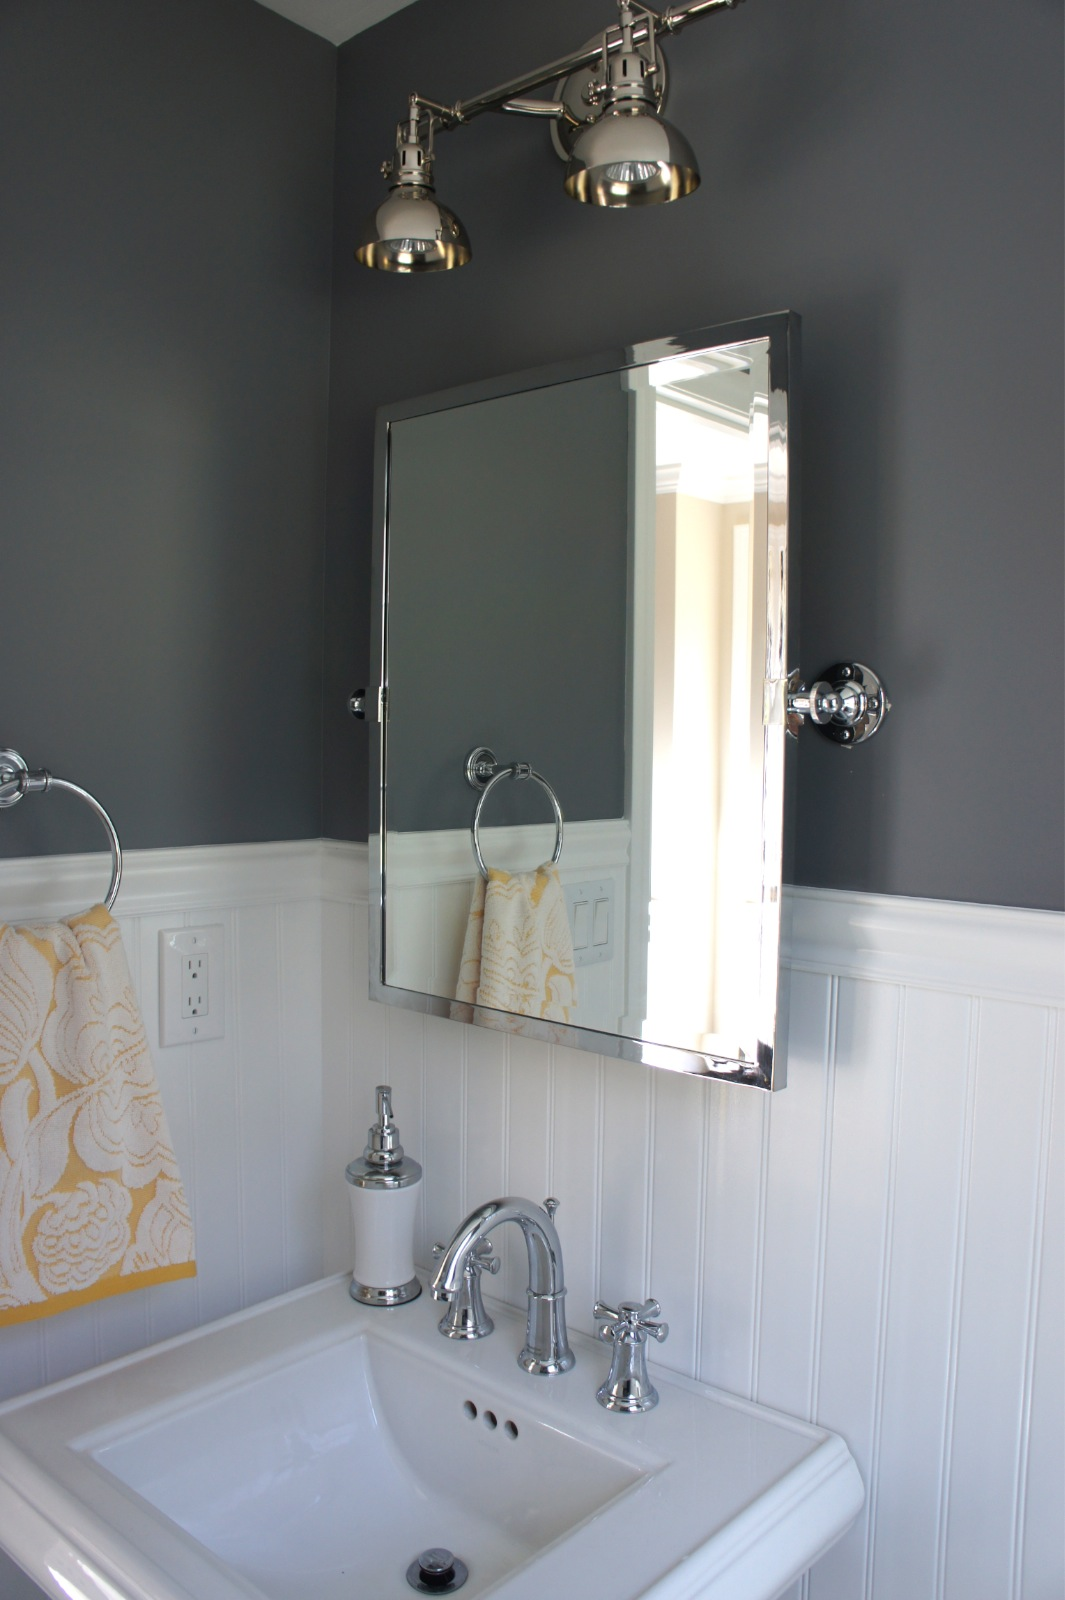 21 Unique Bathroom Light Fixtures Above Mirror | eyagci.com